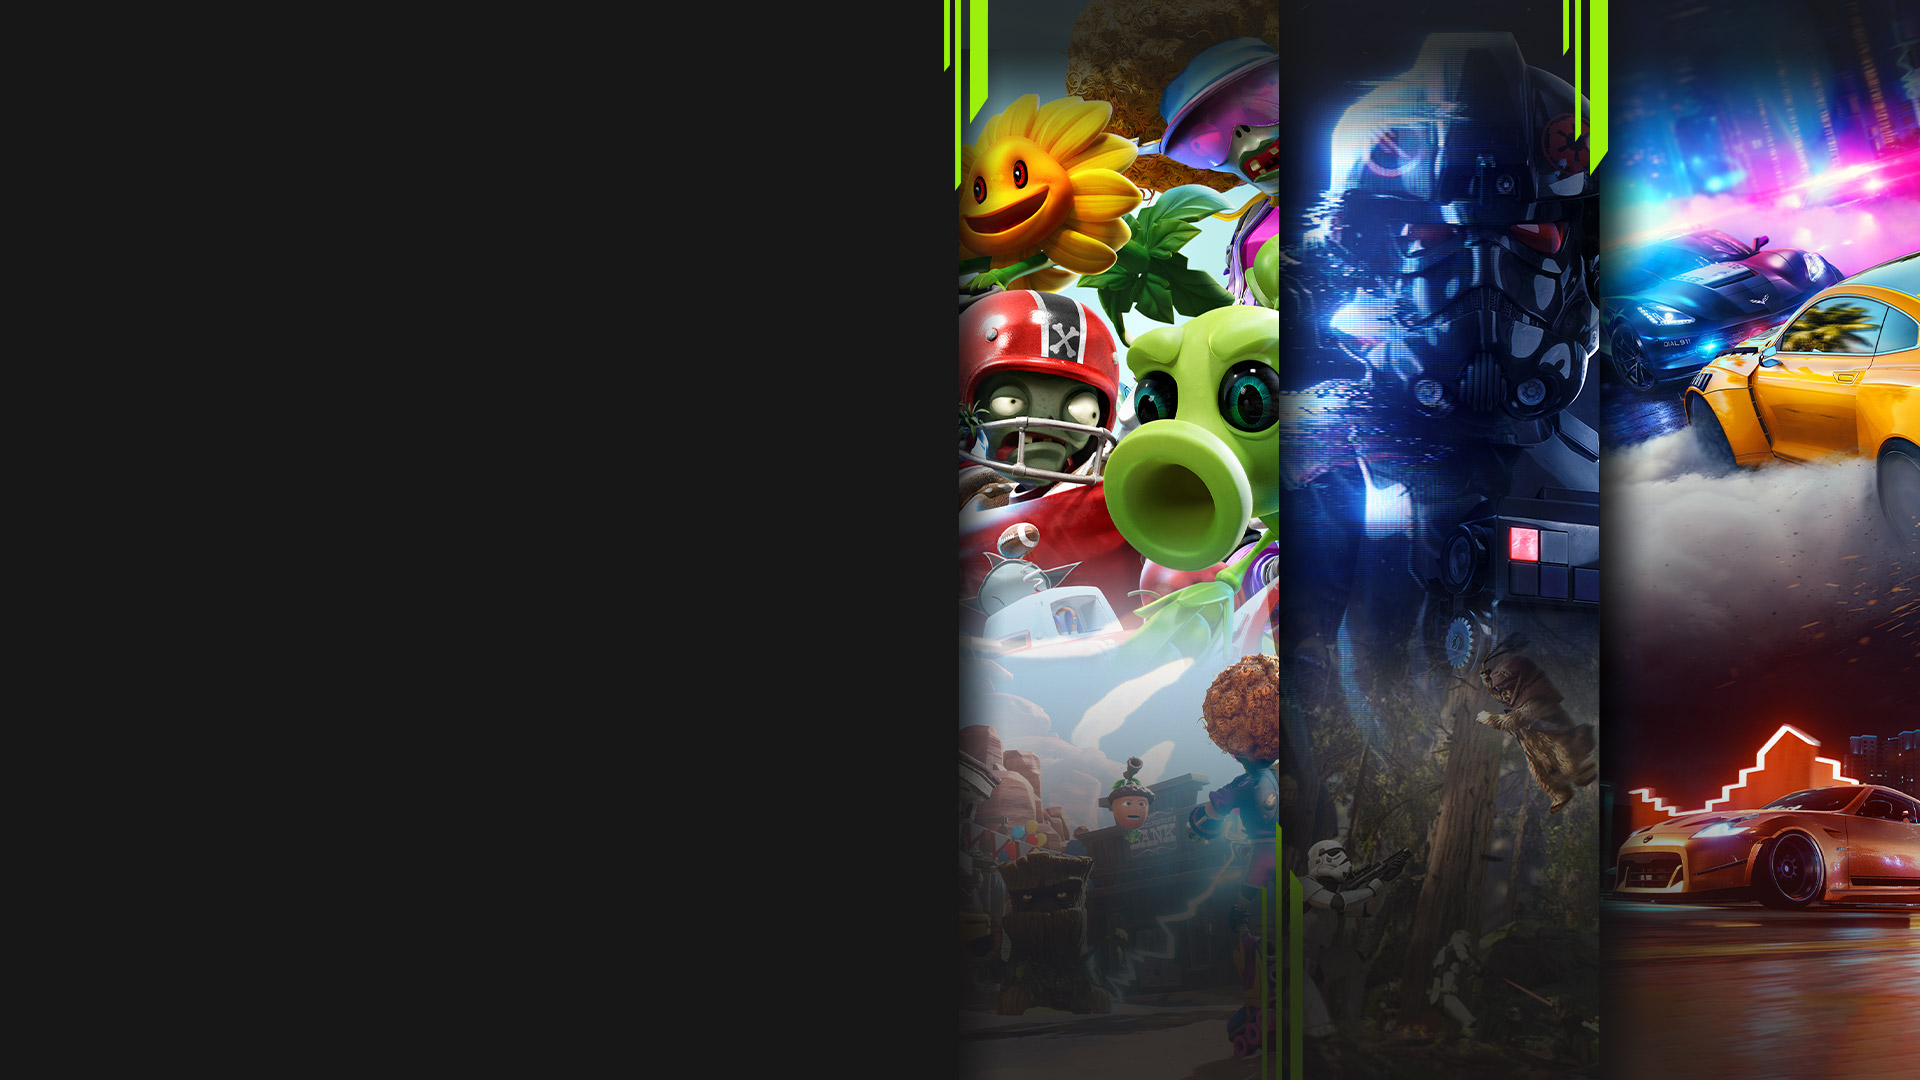 Arte de varios juegos de EA, como Plants vs. Zombies: Battle for Neighborville, Star Wars Battlefront II y Need for Speed Heat.